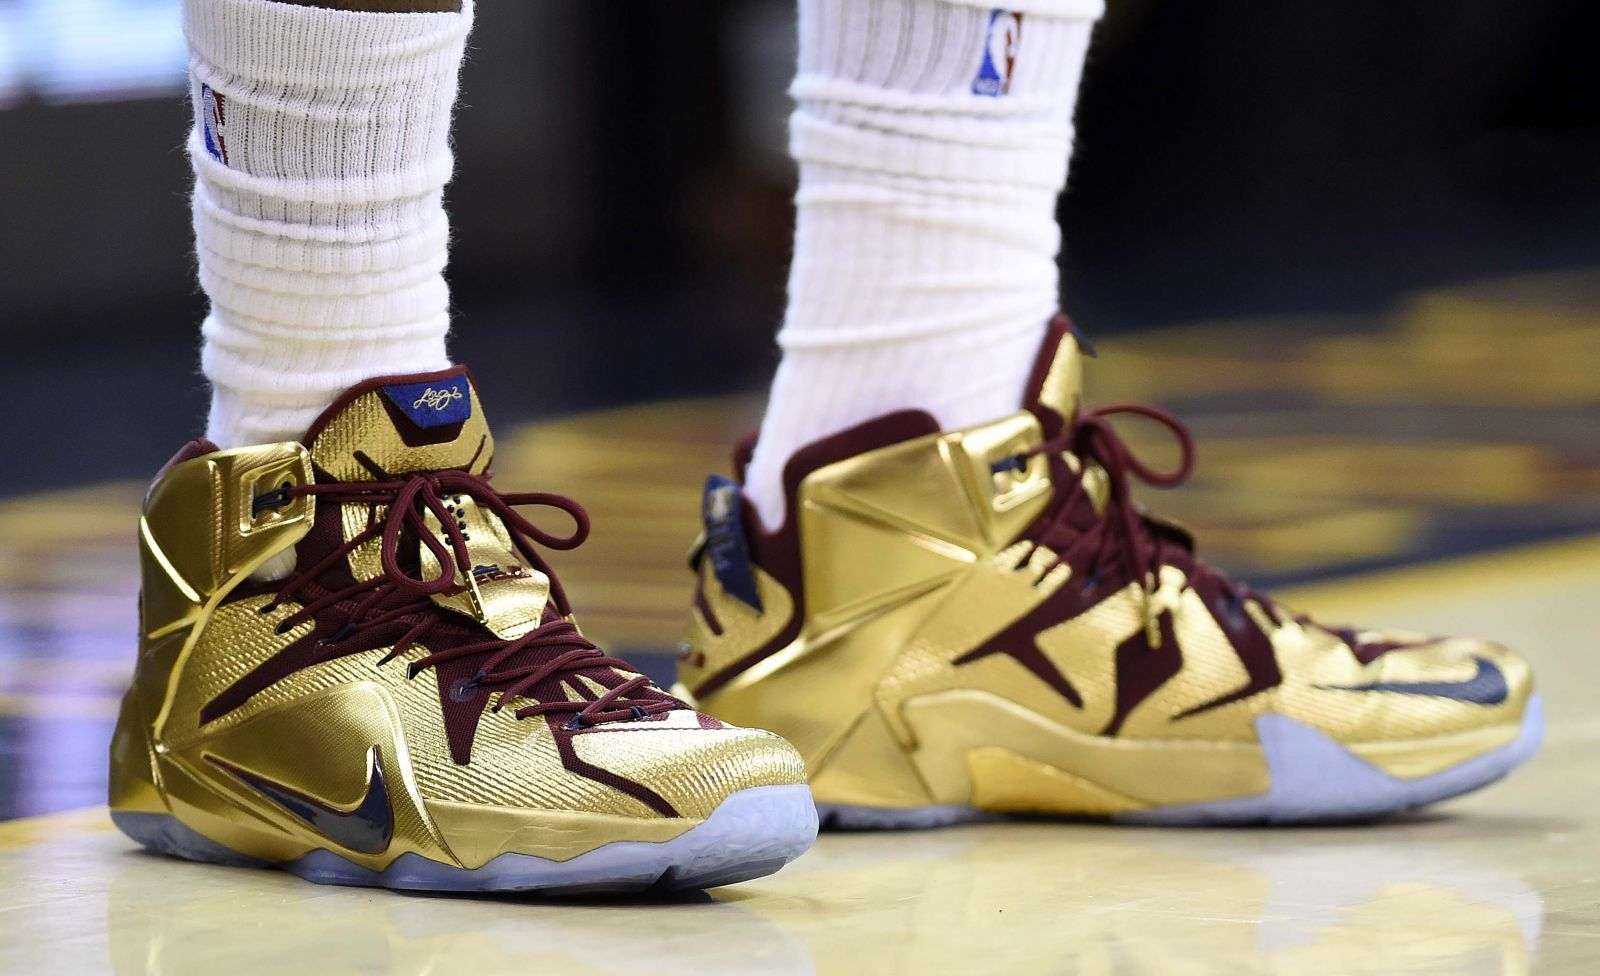 the best attitude 1aead 90b98 #SoleWatch: LeBron James Going for Gold in Game 6 Sneakers. Player  exclusives.